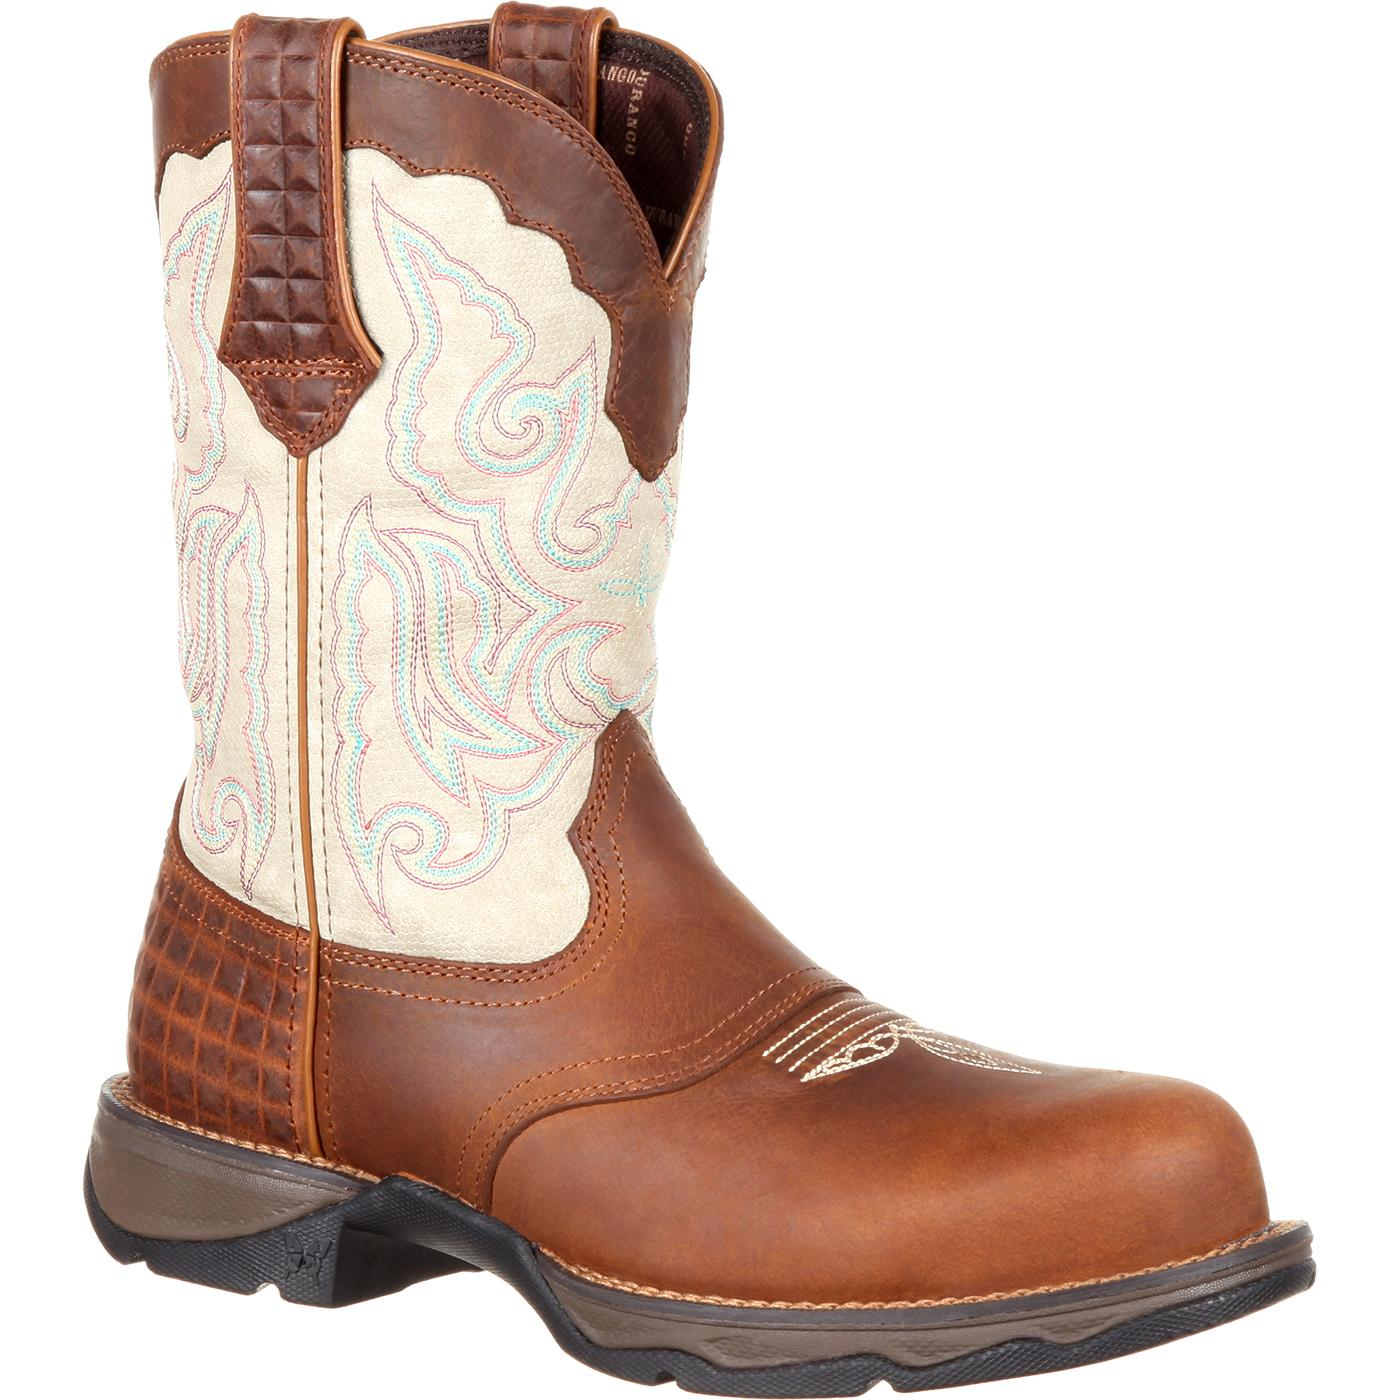 27257dc97f1 Lady Rebel by Durango Women's Composite Toe Saddle Western Boot